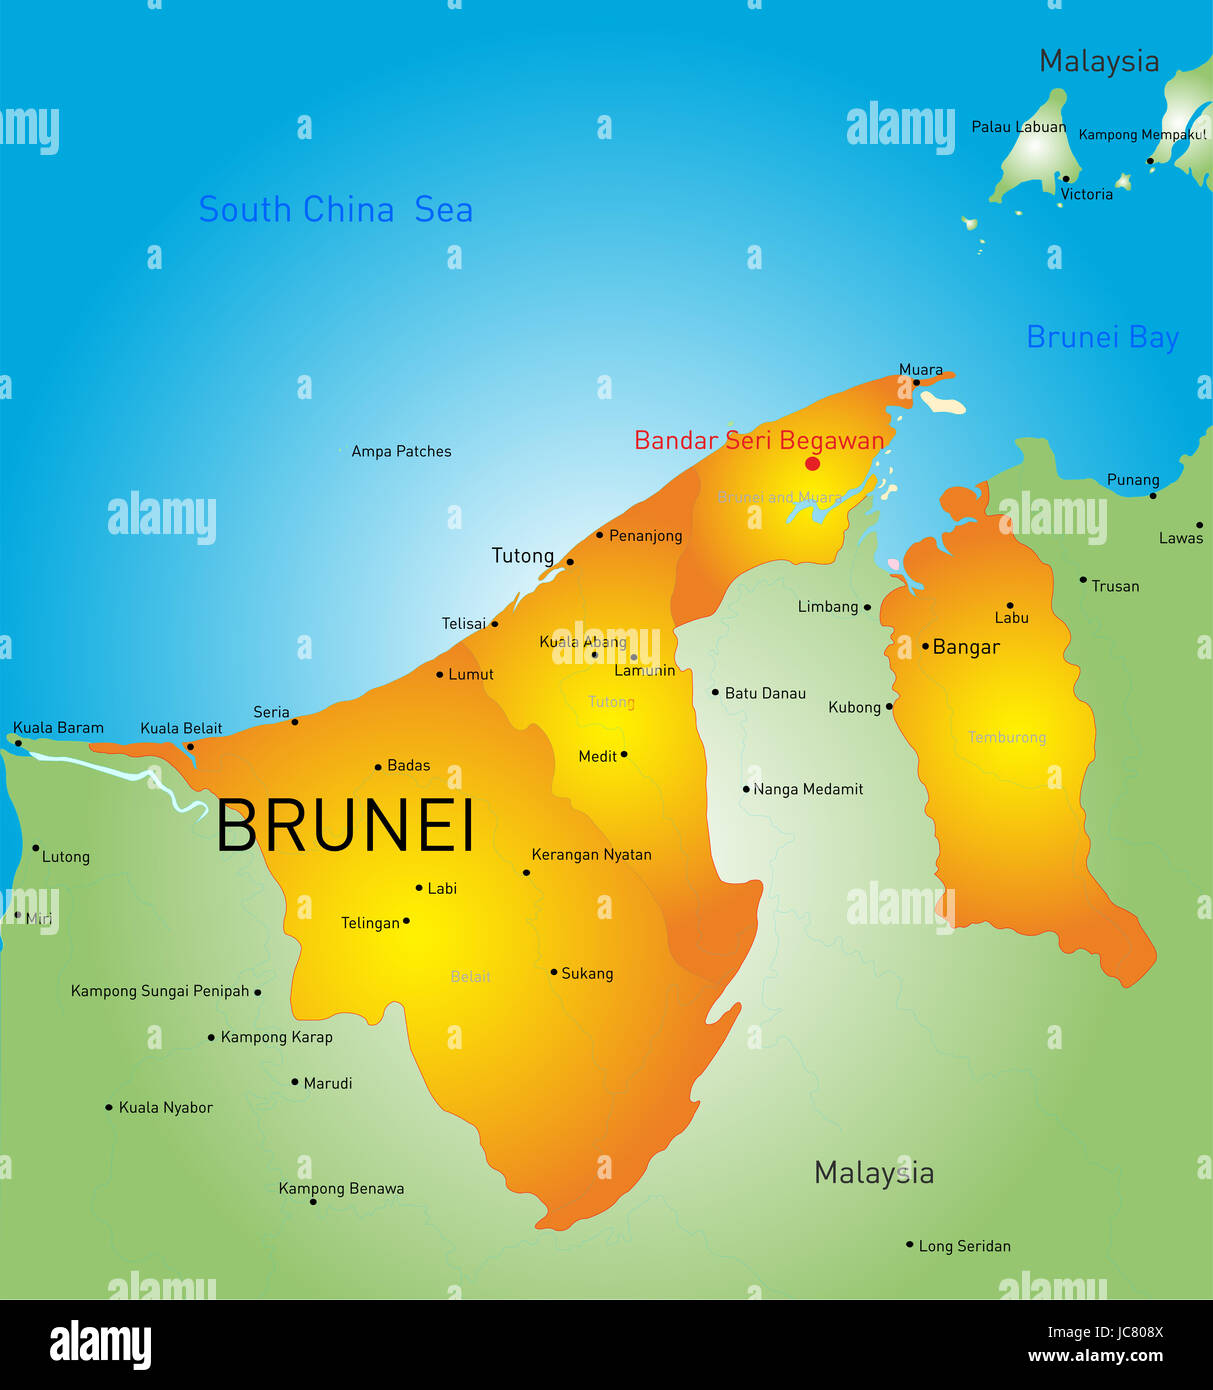 Vector color map of Brunei country Stock Photo 145234682 Alamy